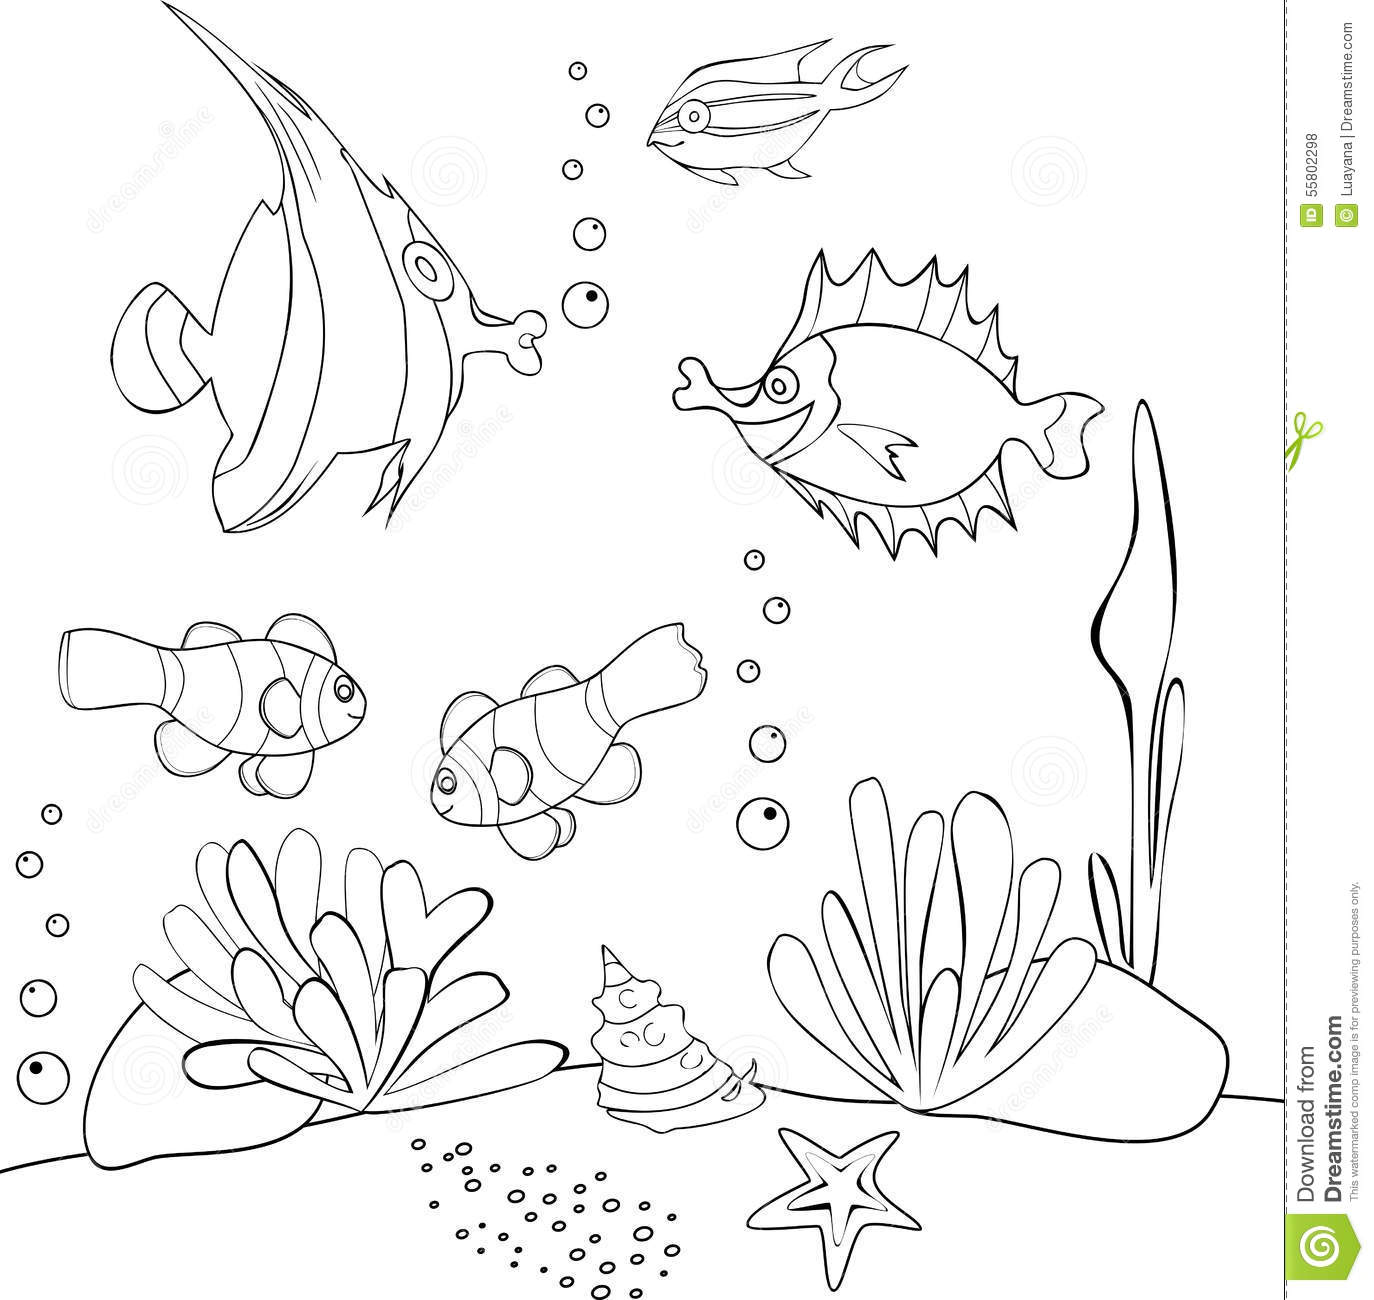 preschool underwater coloring pages - photo#24